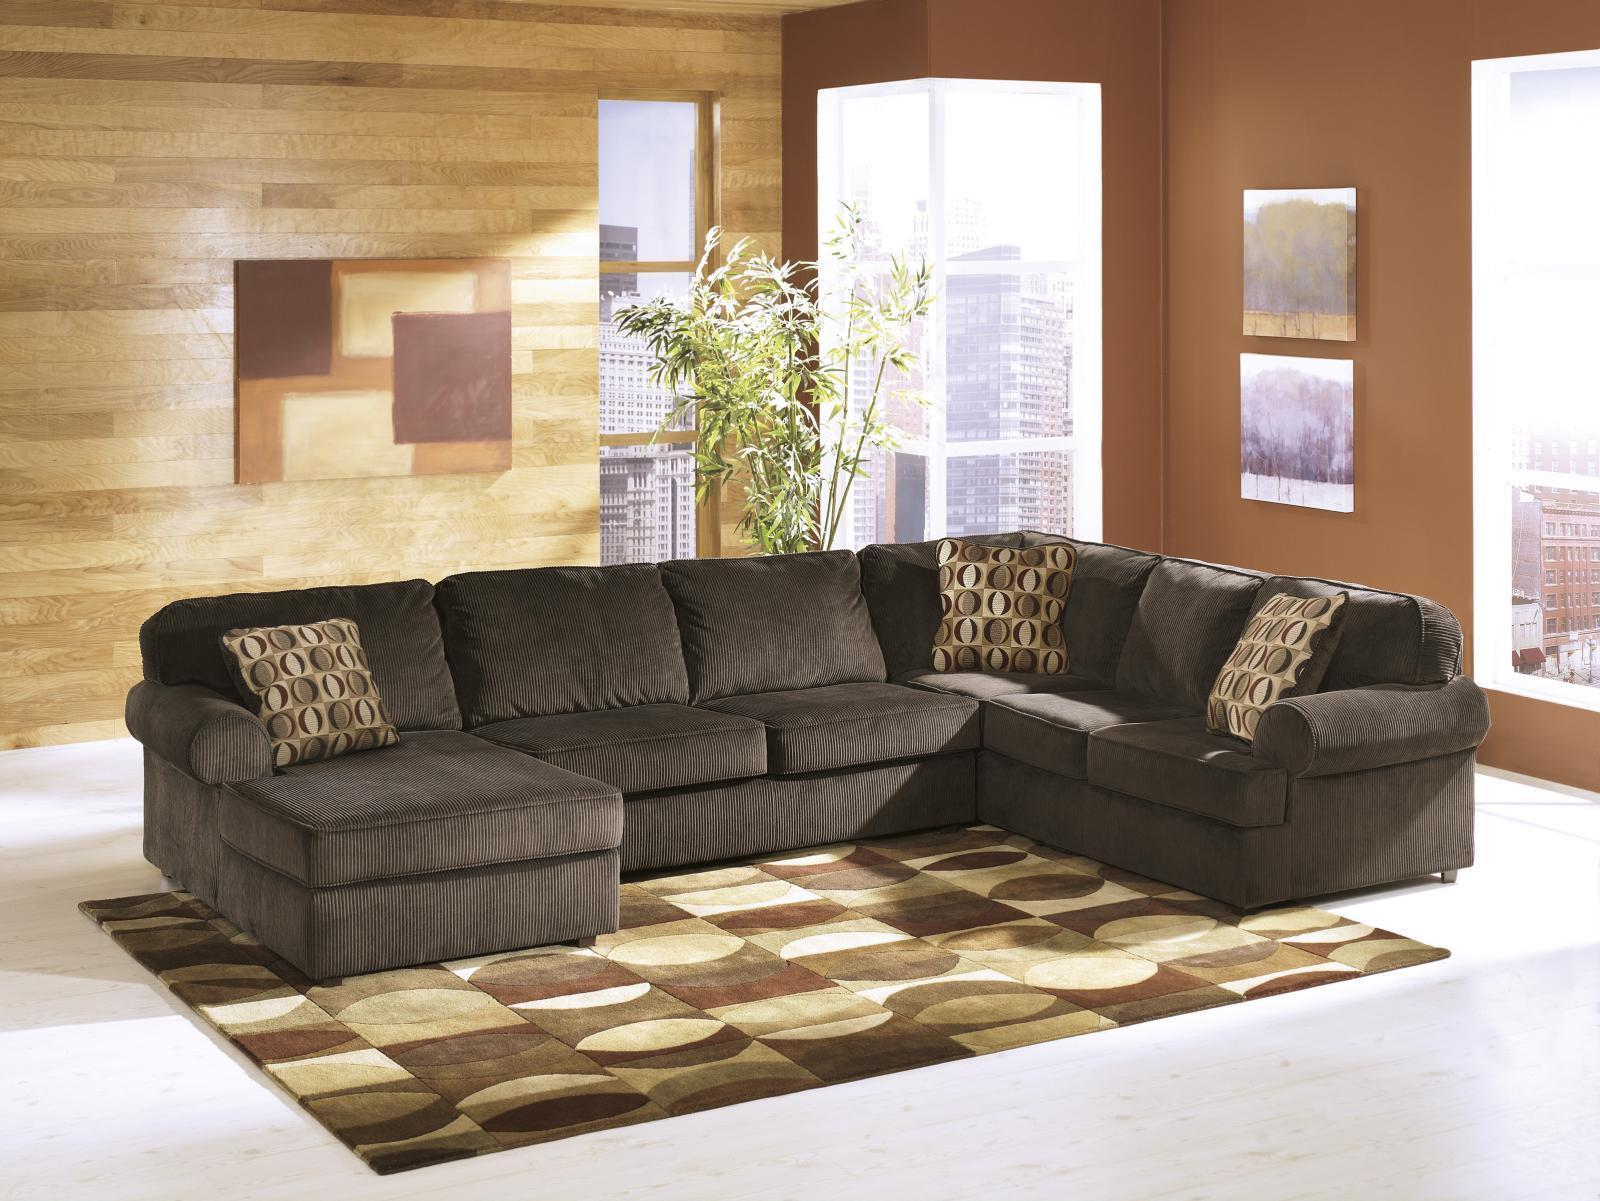 Ashley Vista Living Room Sectional 3pcs in Chocolate Left Facing Contemporary